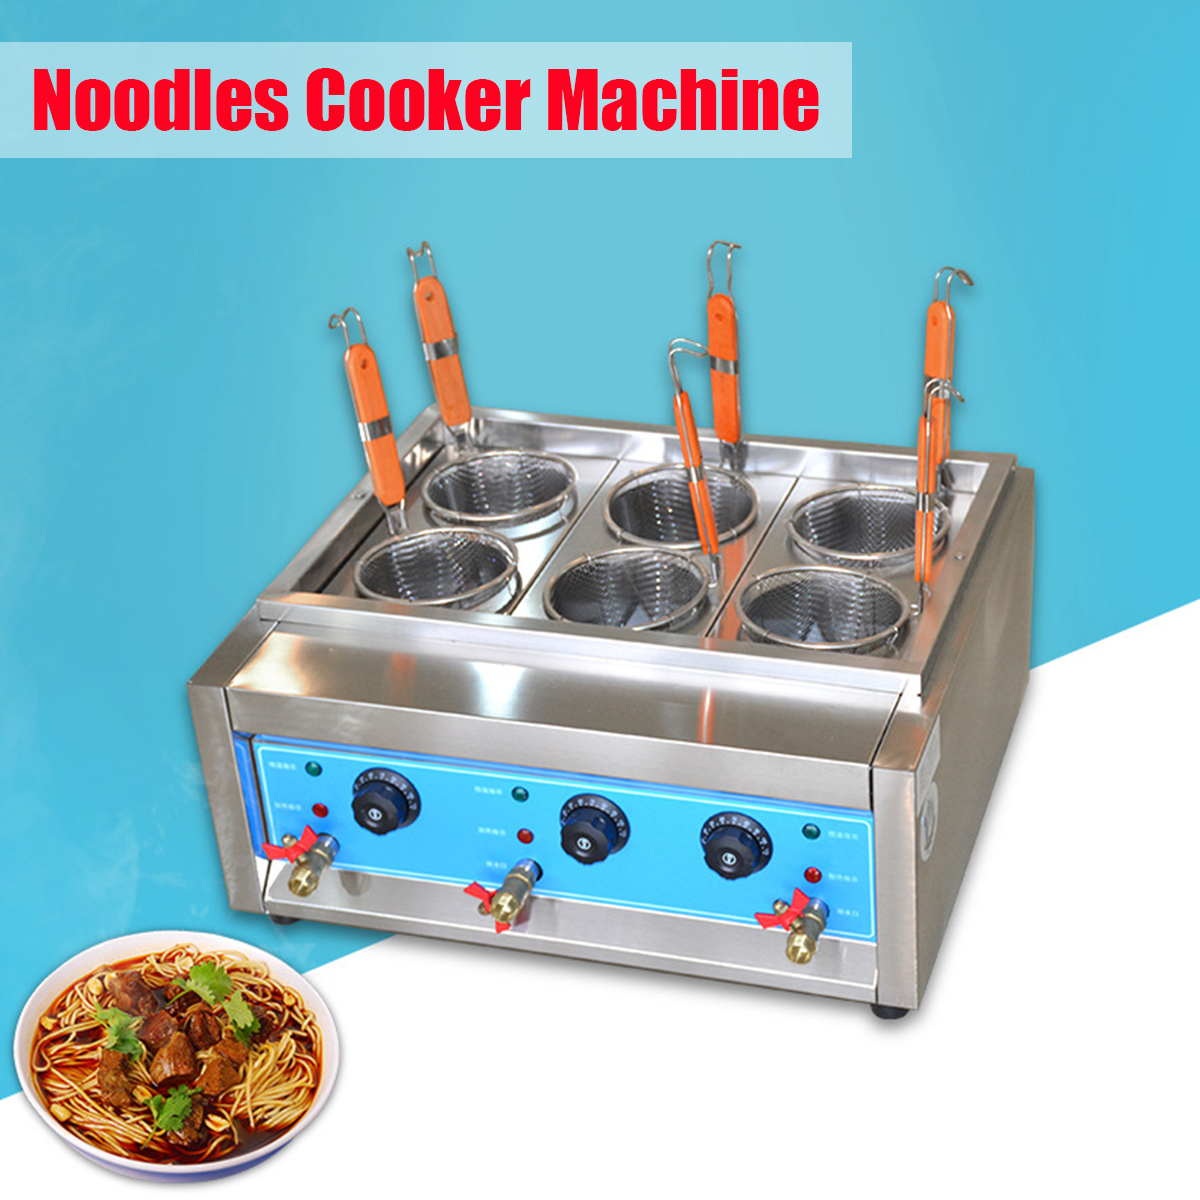 220V Multifunctional Table Electric Noodles Cooker Heating Machine Furnace 4/6 Holes Commercial Pasta Food Cooker Business Use eemrke cob angel eyes drl for kia sportage 2008 2012 h11 30w bulbs led fog lights daytime running lights tagfahrlicht kits page 5